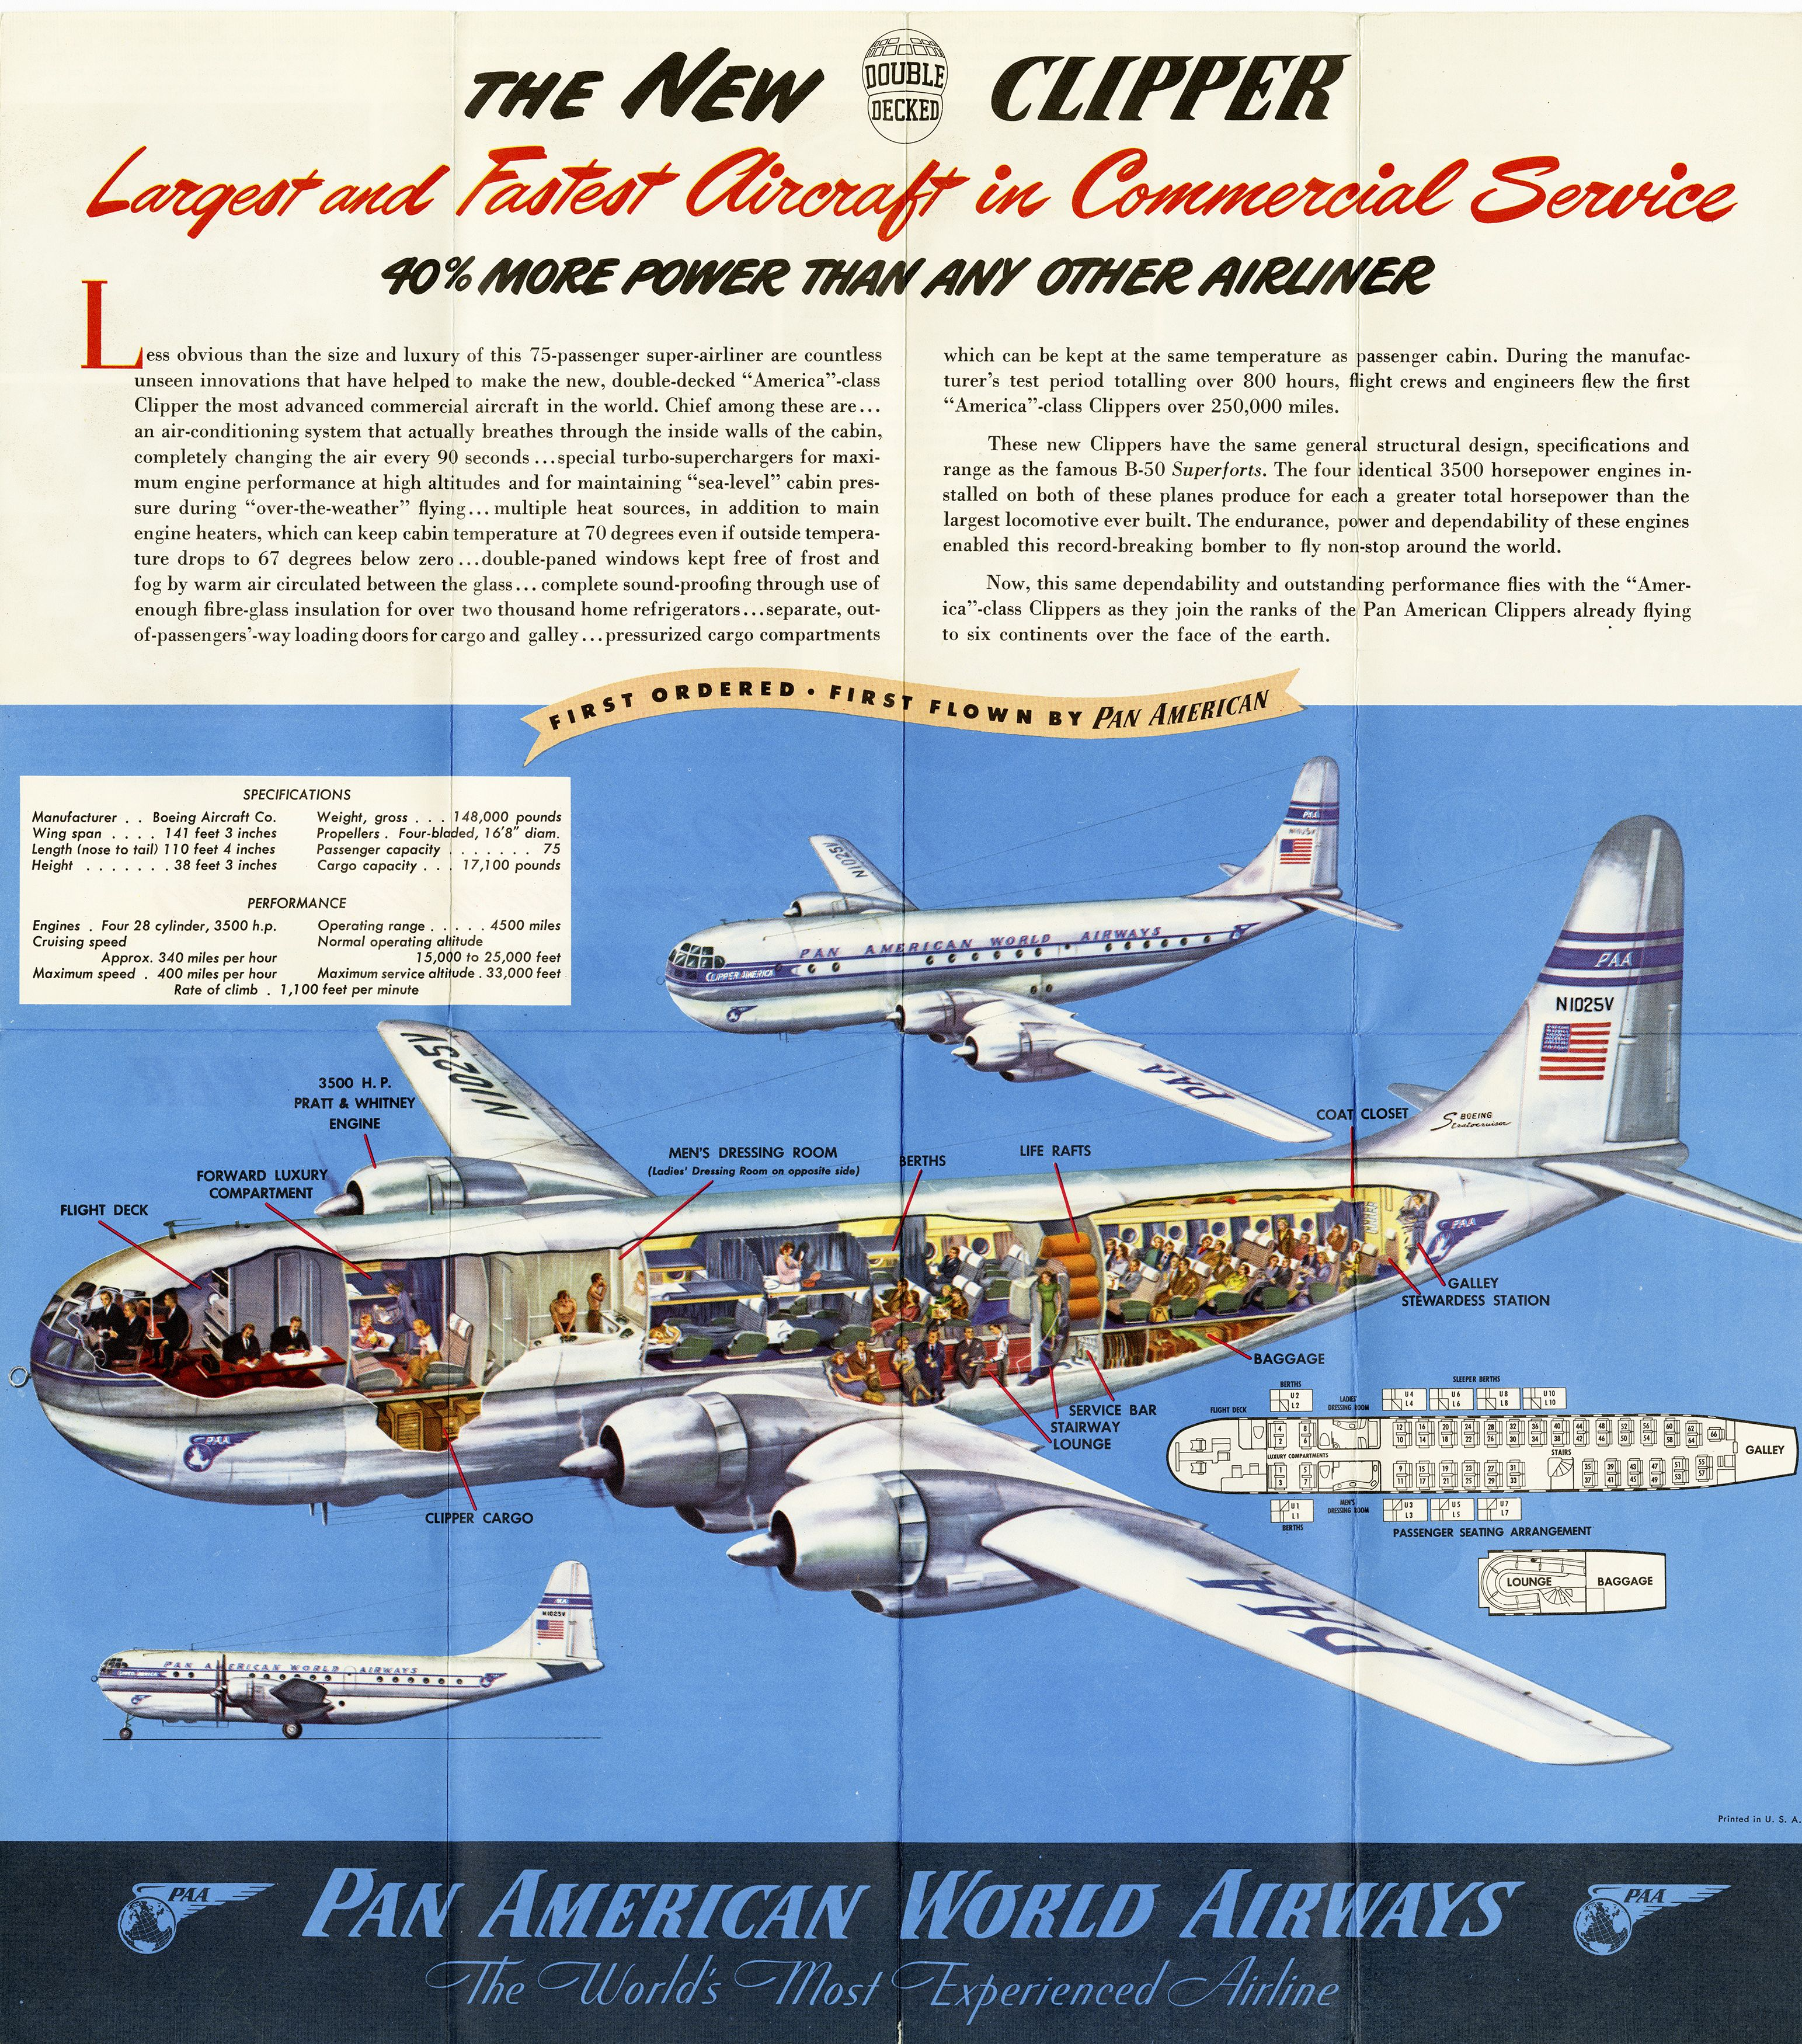 Cutaway of a pan am boeing 377 stratocruiser image from chris sloan - Boeing 377 Stratocruiser Cutaway Drawing